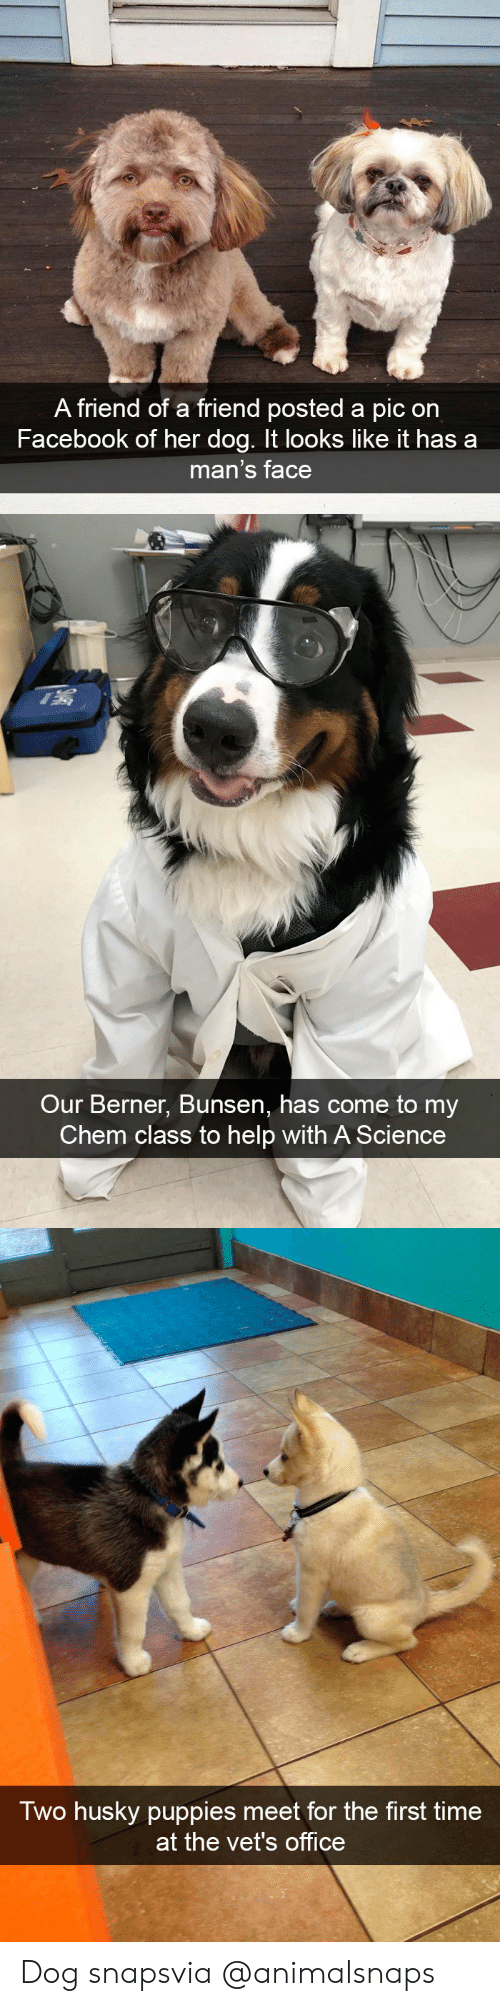 Facebook, Puppies, and Target: A friend of a friend posted a pic on  Facebook of her dog. It looks like it has a  man's face   Our Berner, Bunsen, has come to my  Chem class to help with A Science   Two husky puppies meet for the first time  at the vet's office Dog snapsvia @animalsnaps